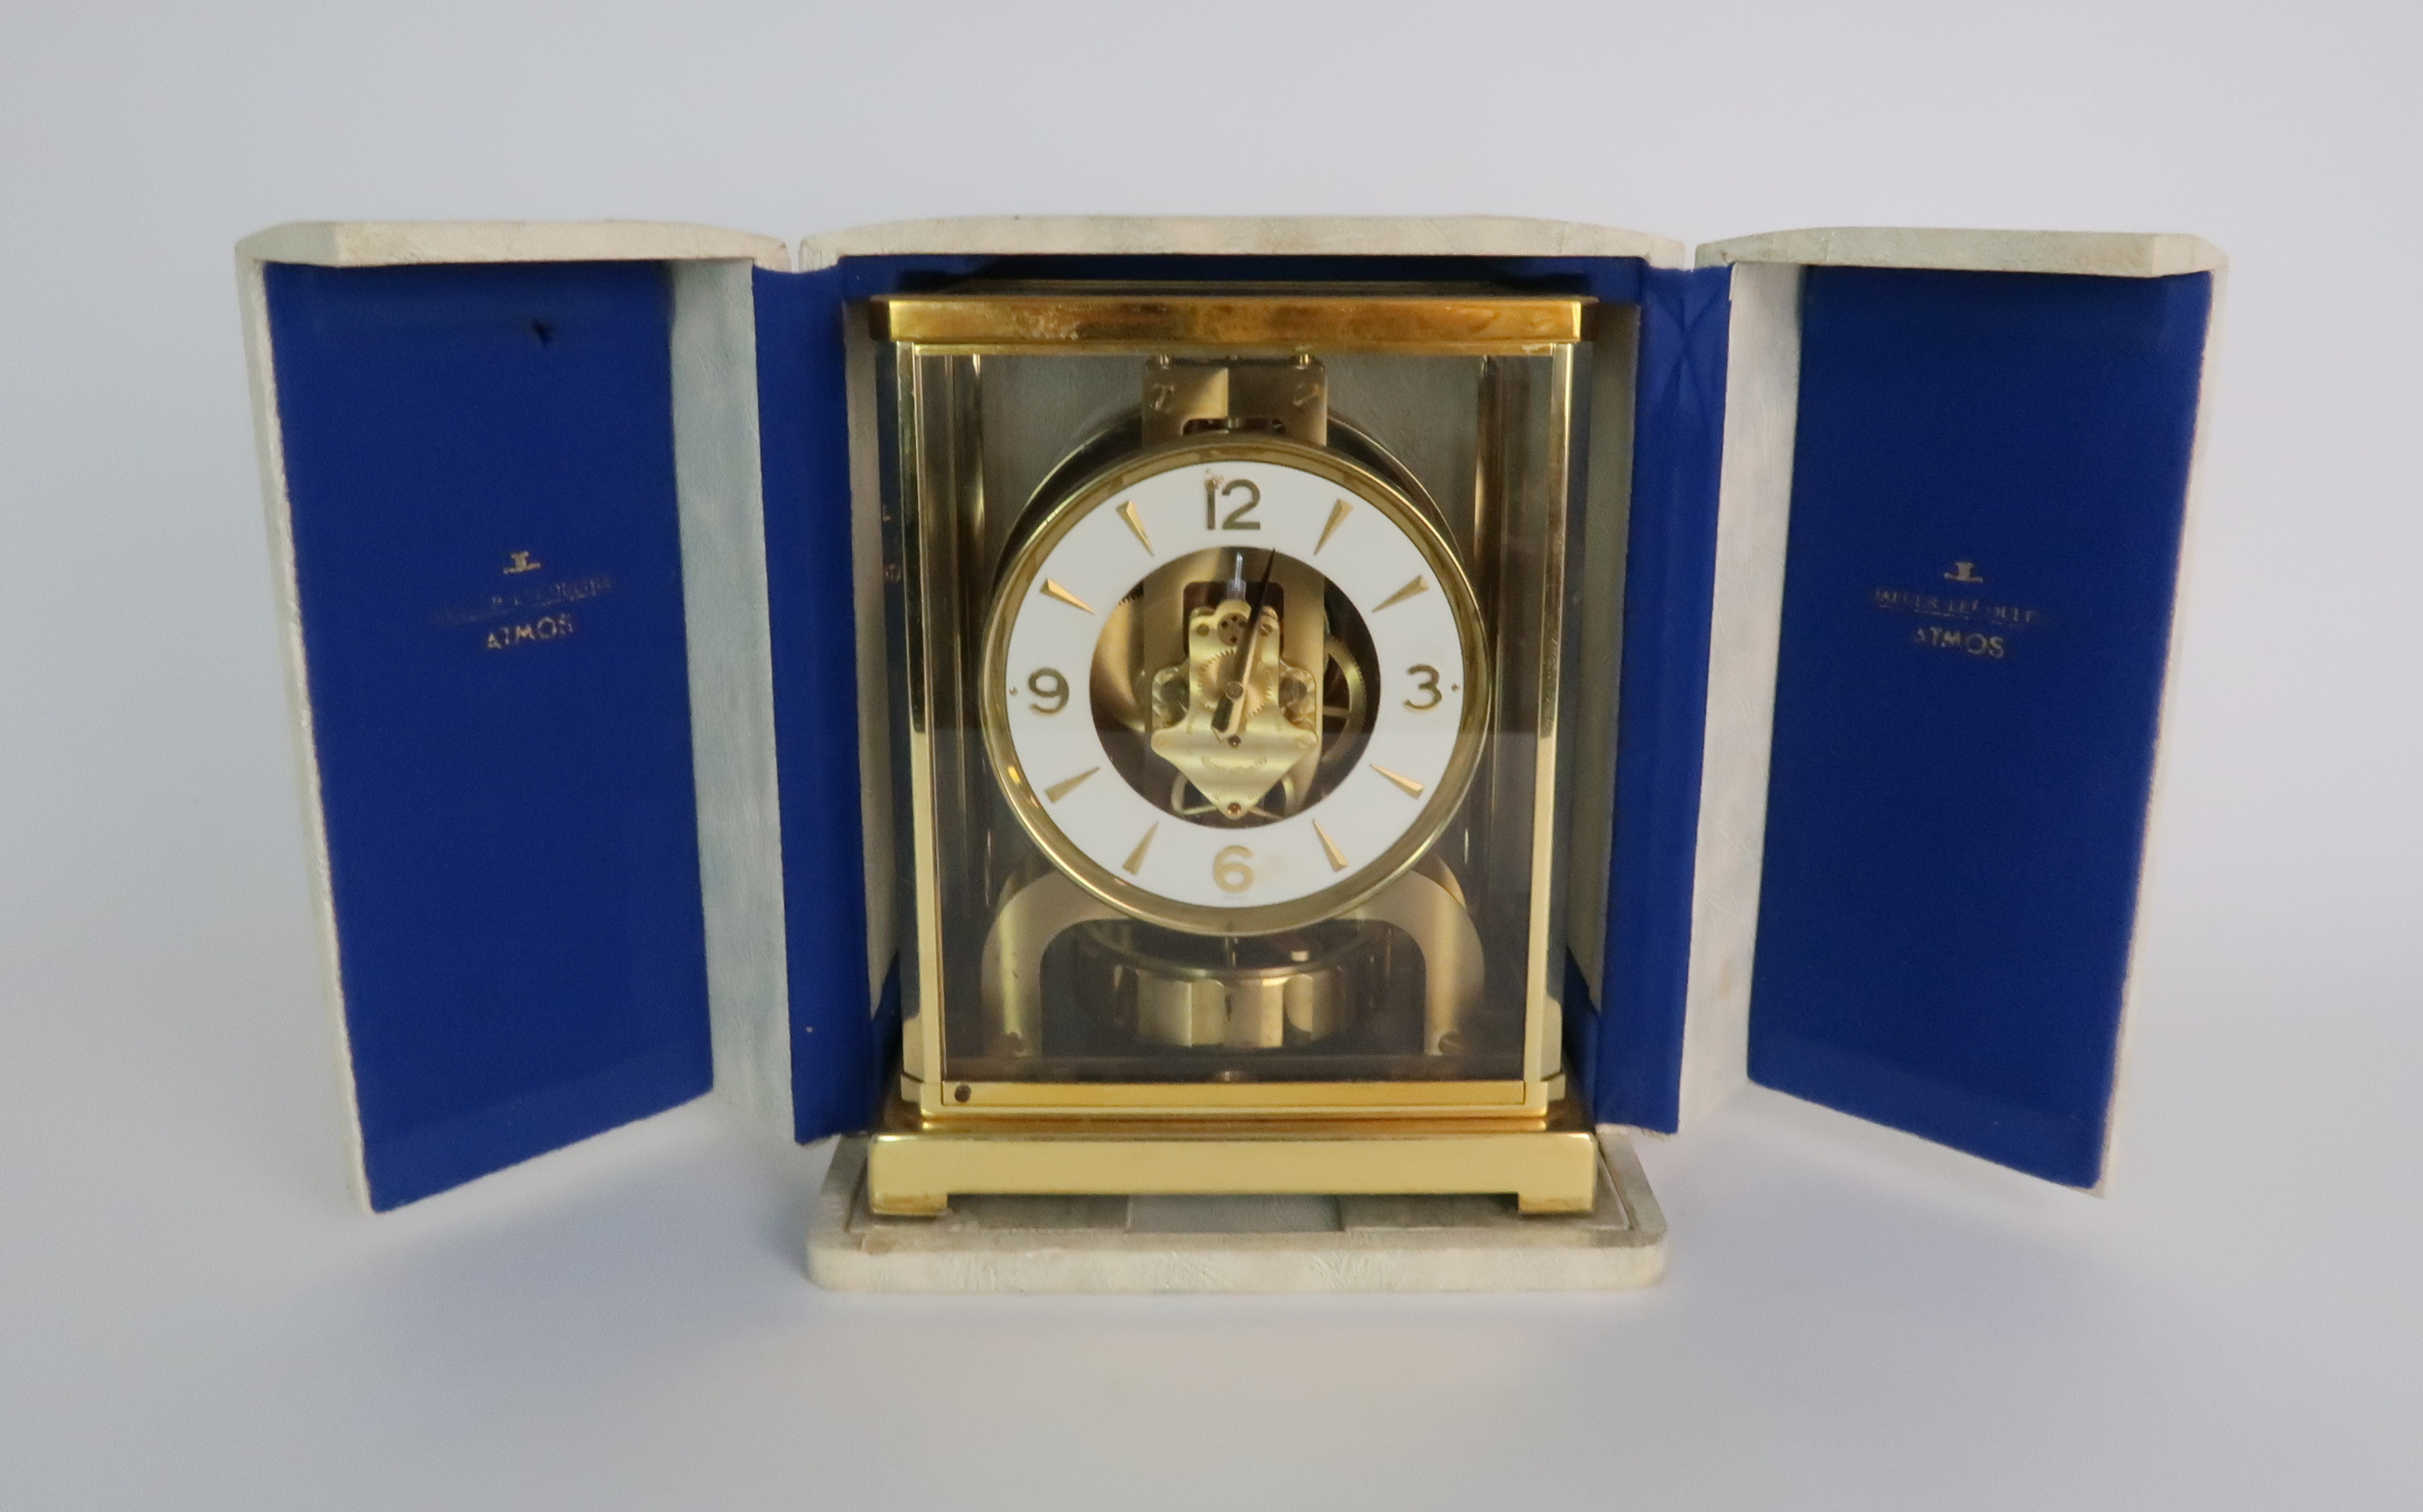 A JAEGER LE COULTRE ATMOS CLOCK in glazed brass case, the white enamel chapter ring with applied - Image 7 of 8